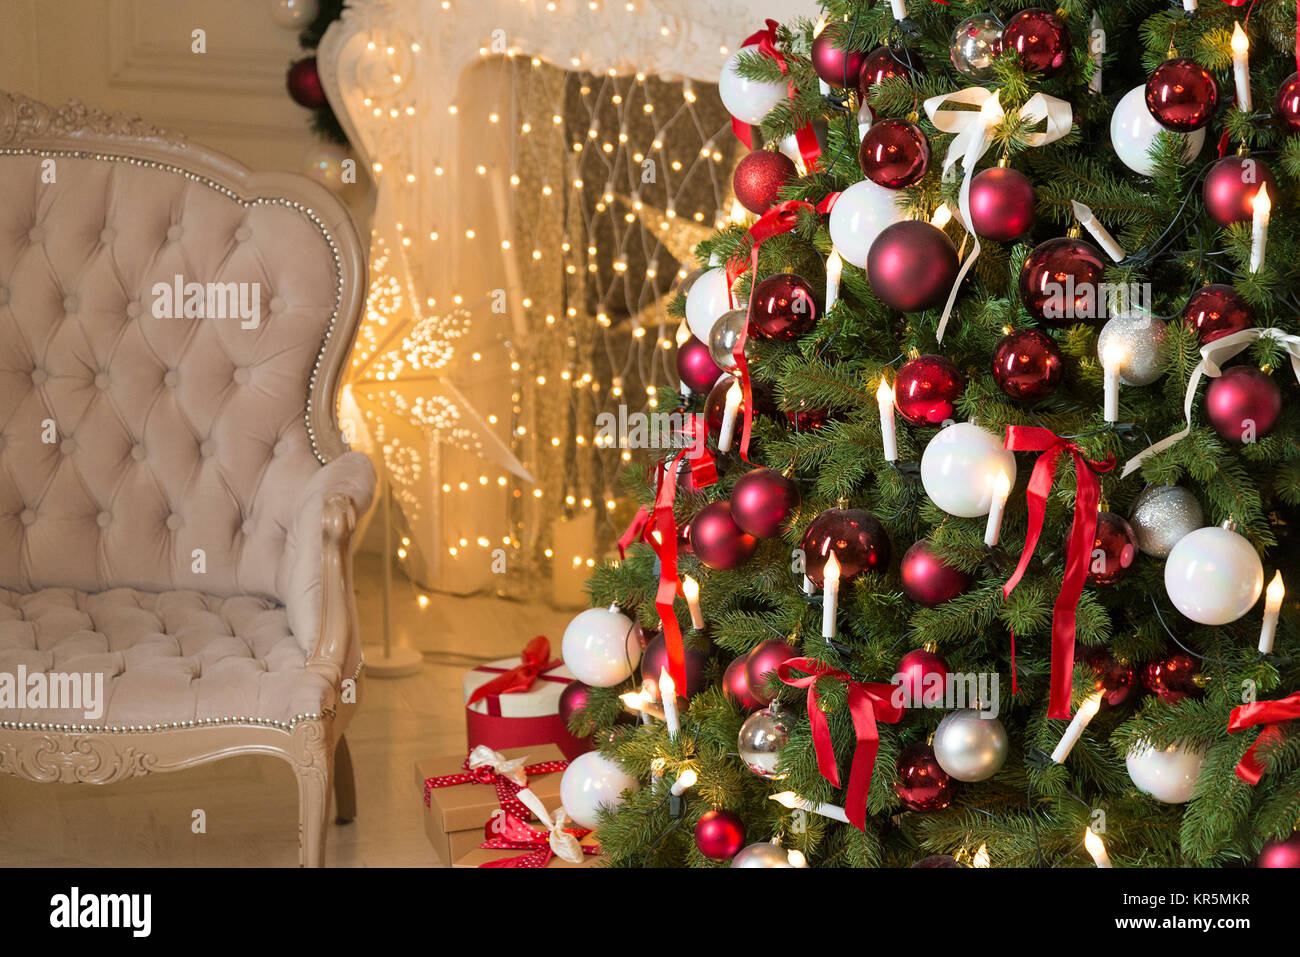 Christmas Living Room With A Fireplace Sofa Tree And Gifts Beautiful New Year Decorated Classic Home Interior Winter Background